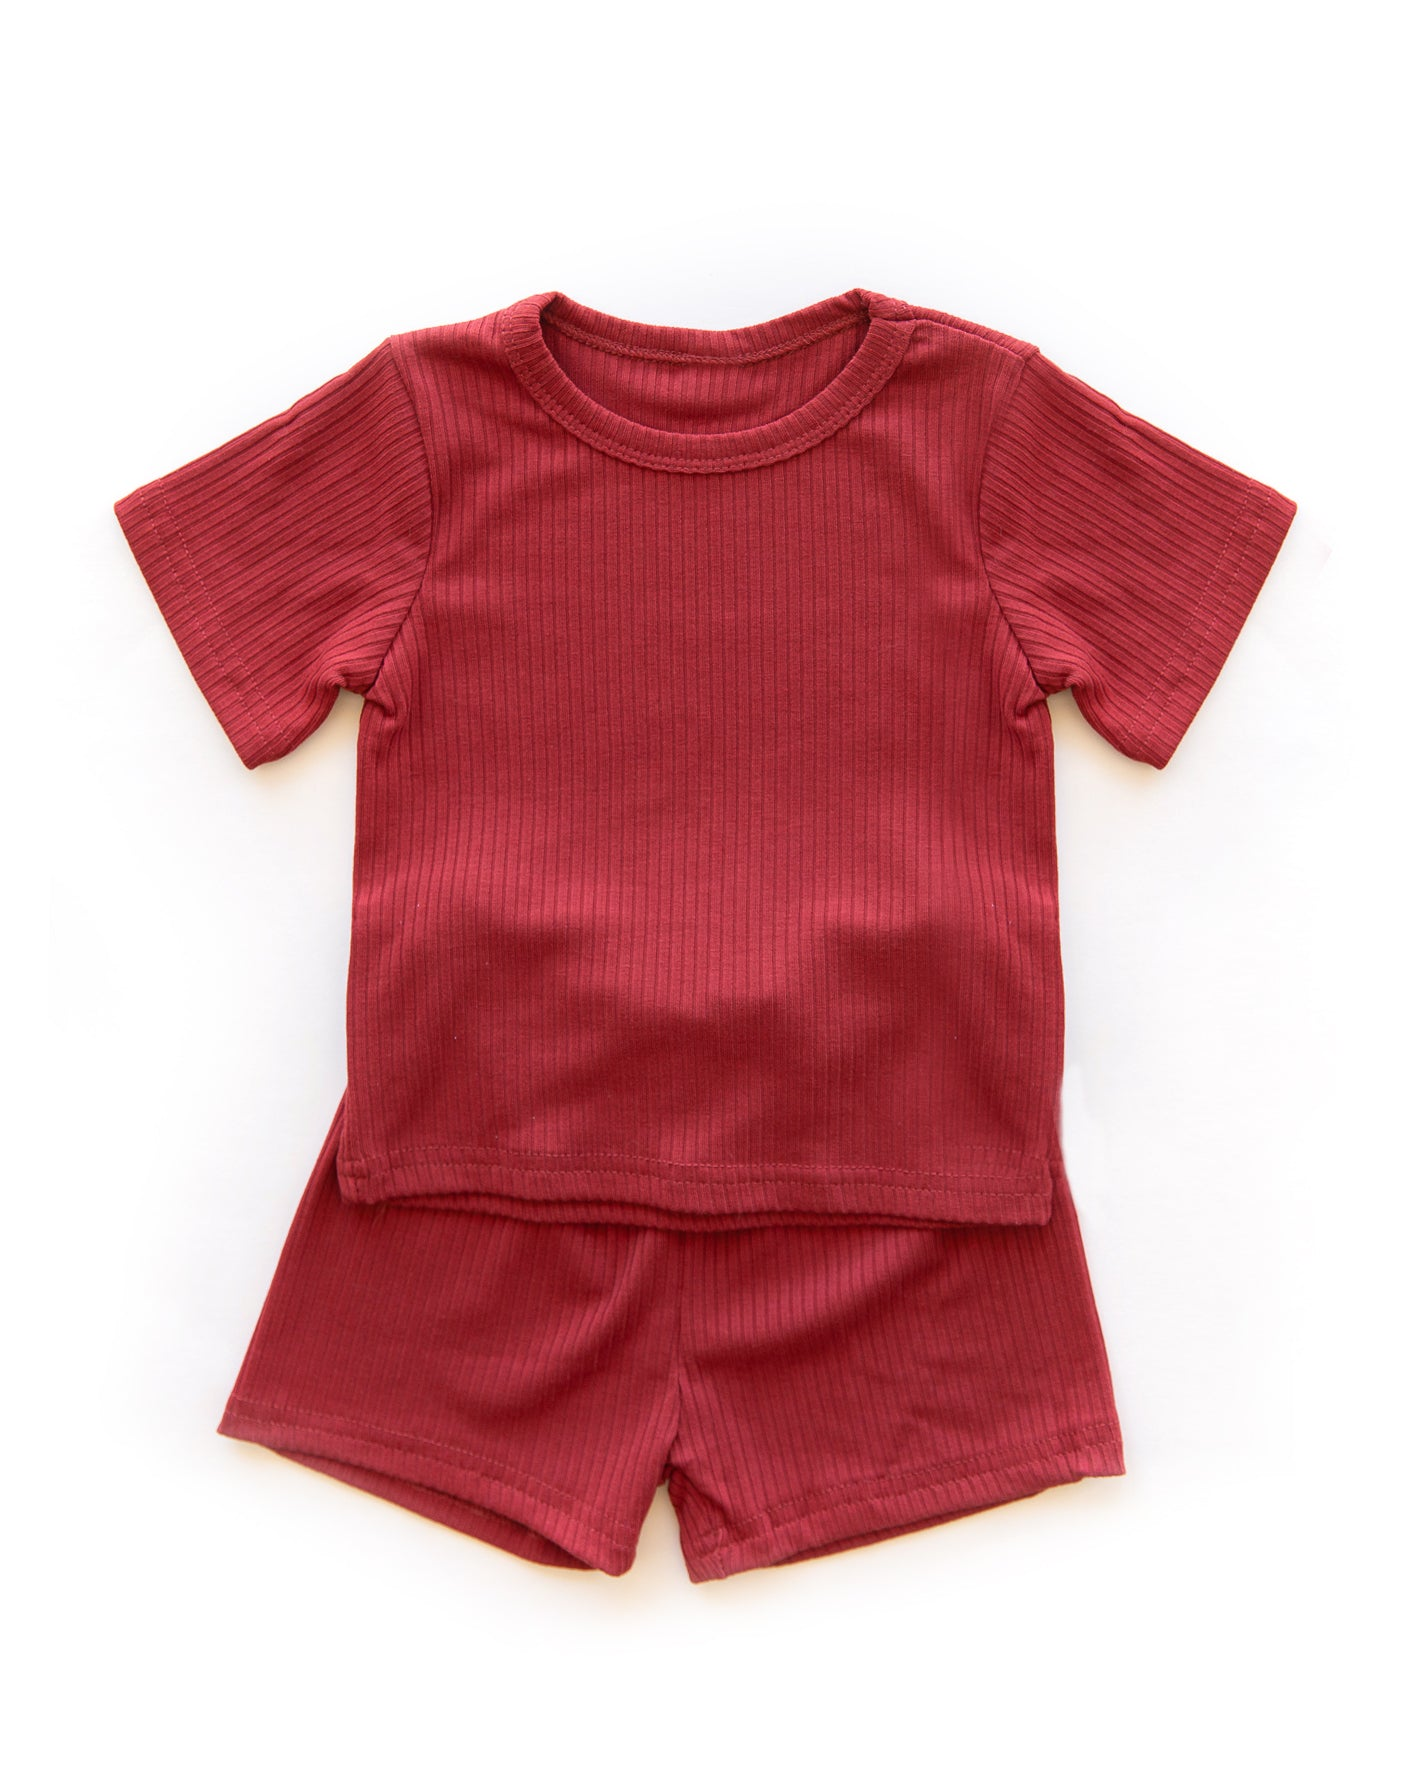 Riley Outfit in Deep Red - Reverie Threads